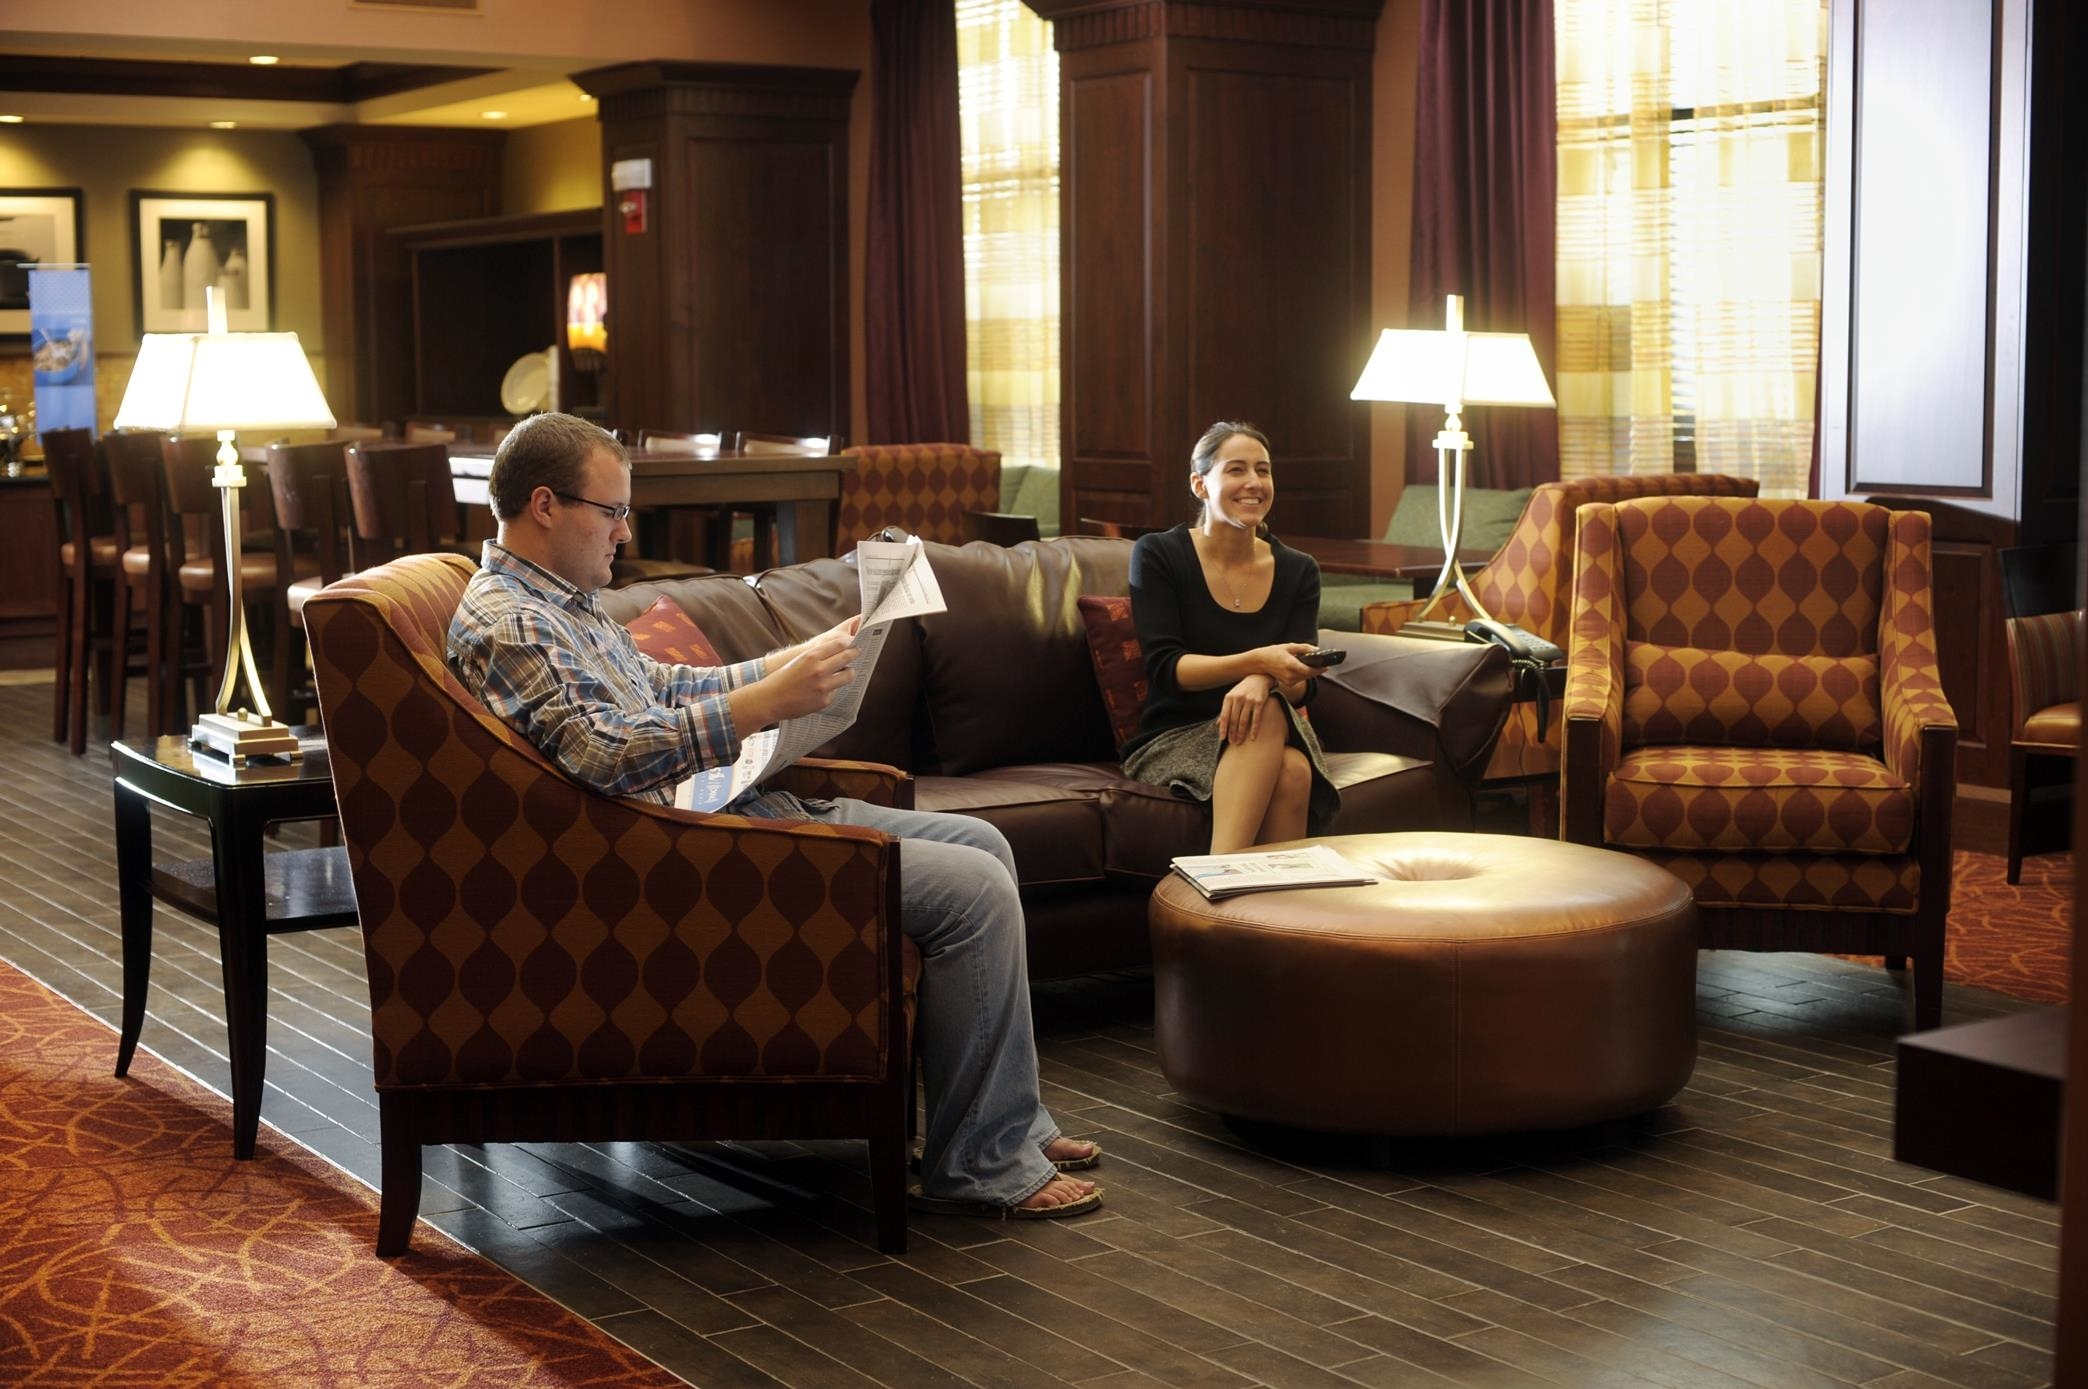 Hampton Inn & Suites Chadds Ford image 32